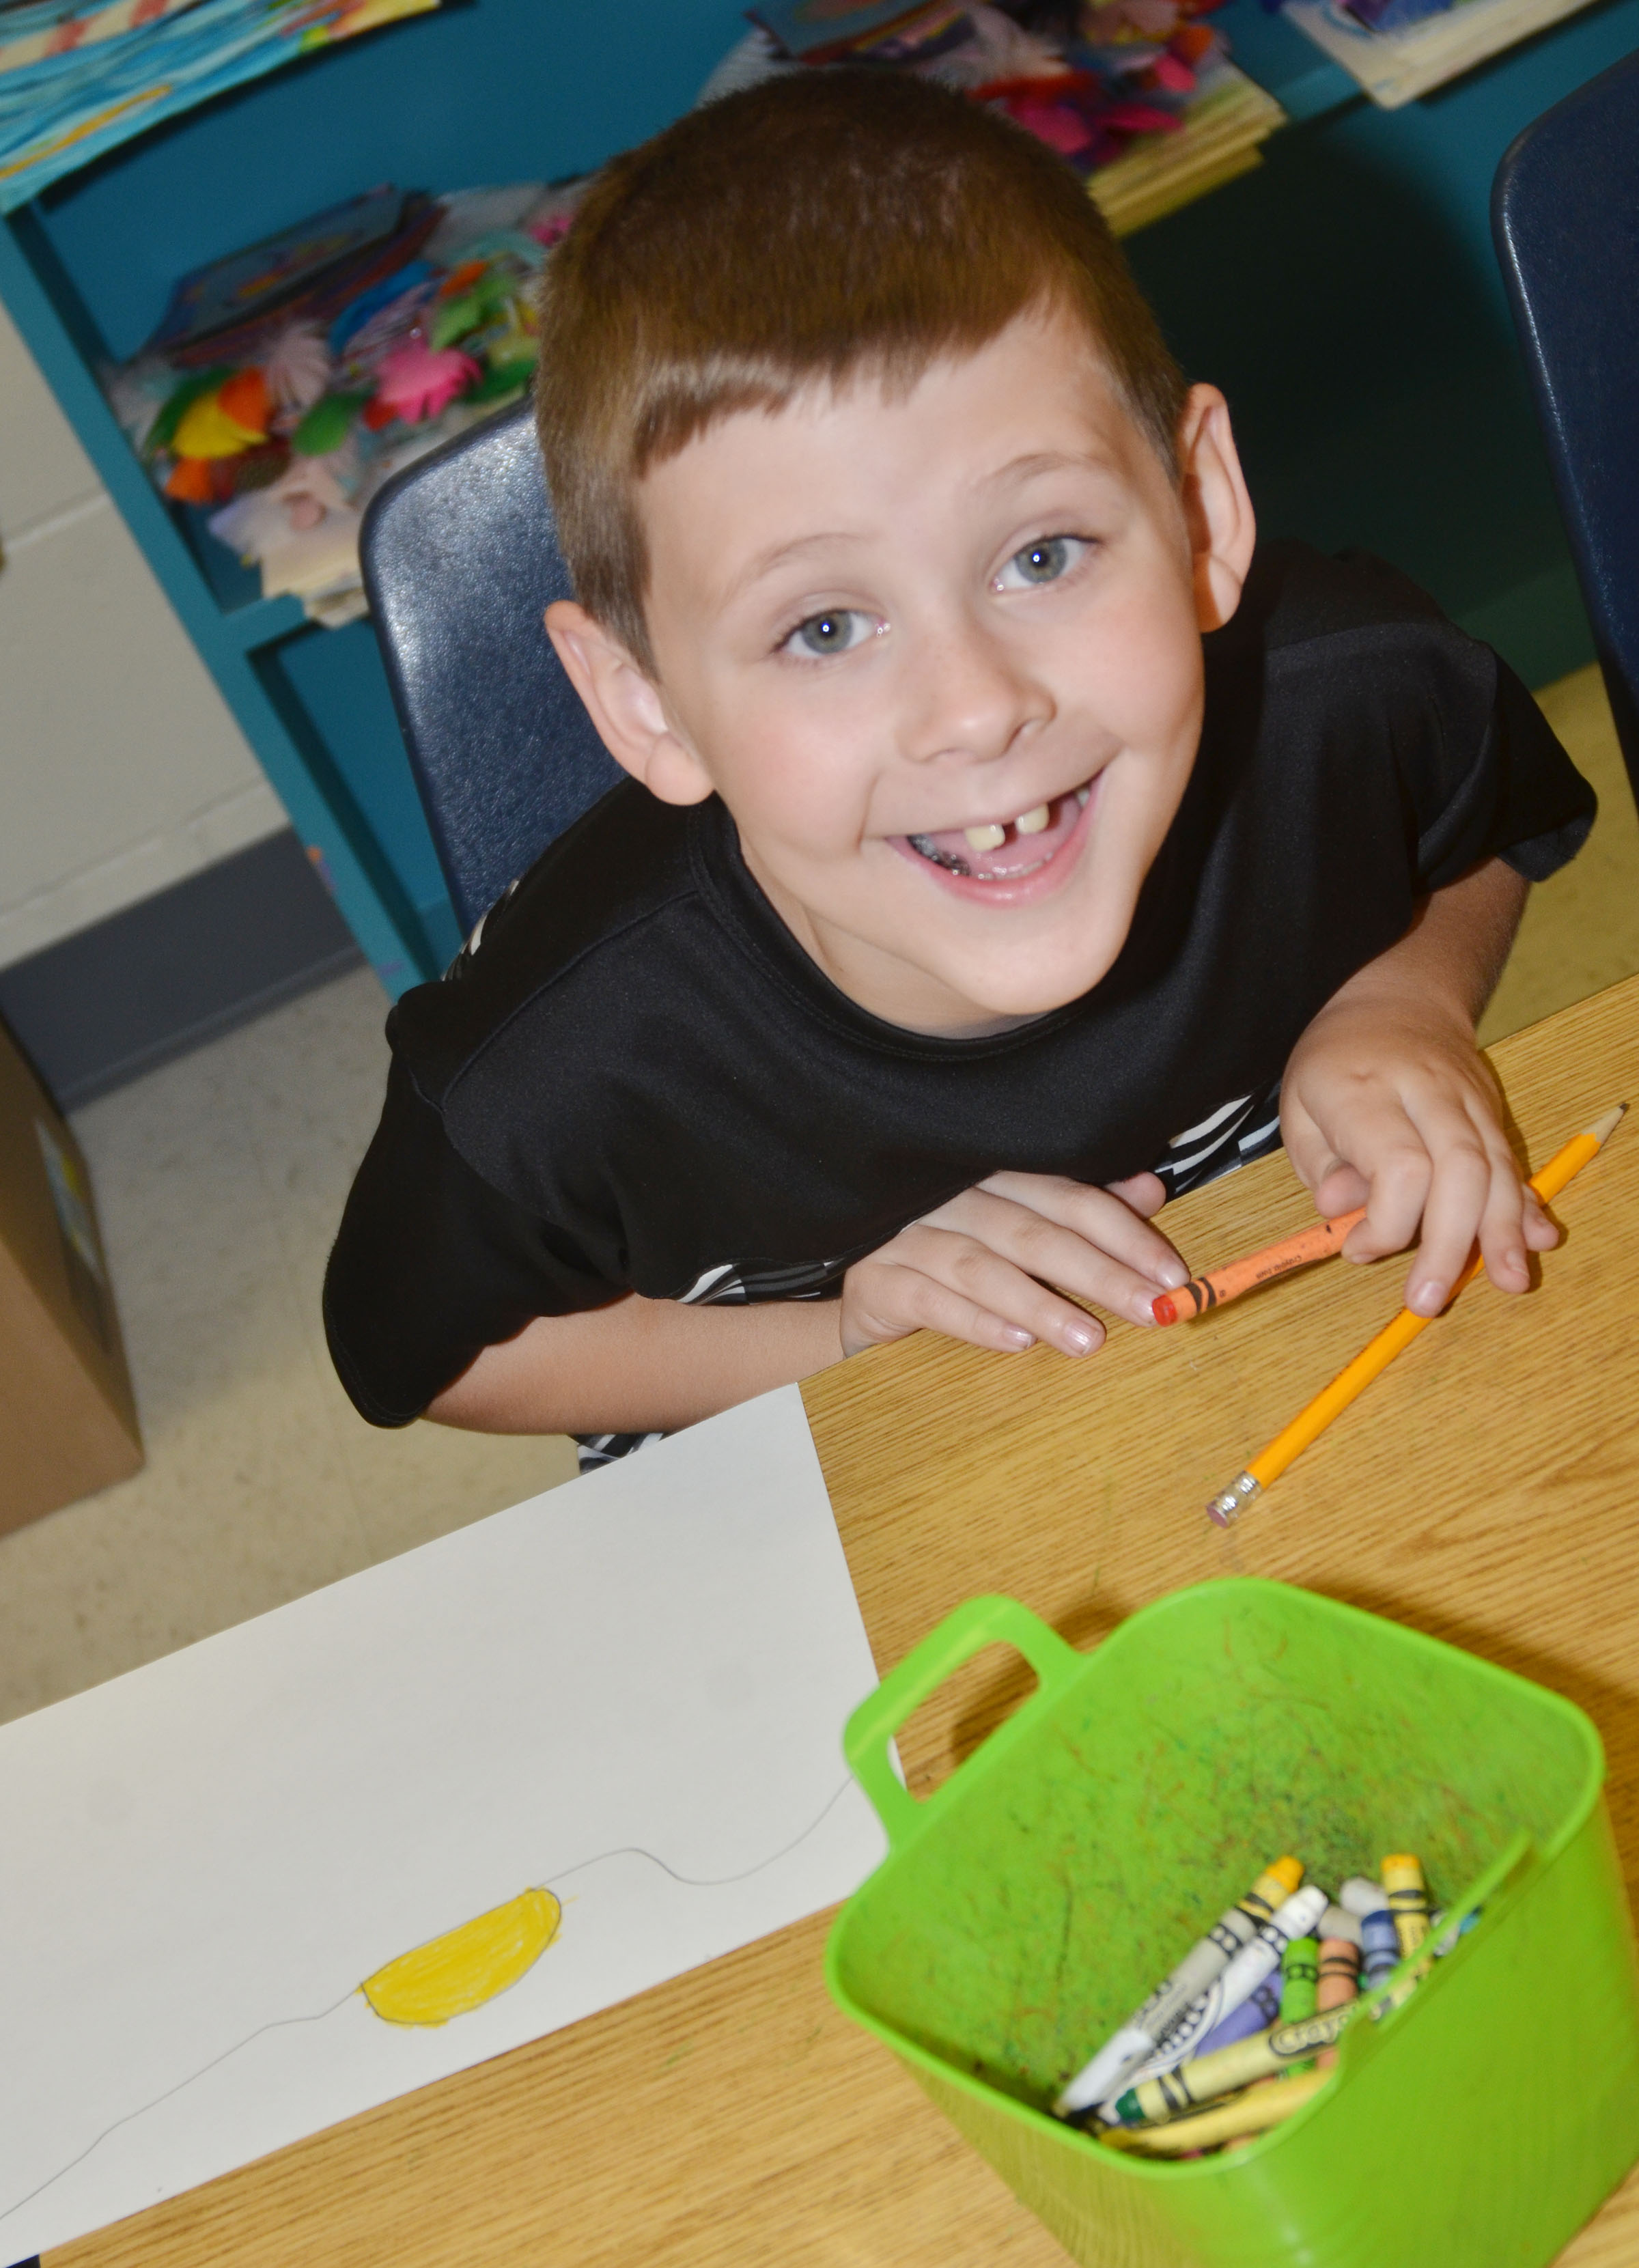 CES second-grader Ryan Tungate smiles as he works on his Save the Frogs contest artwork.